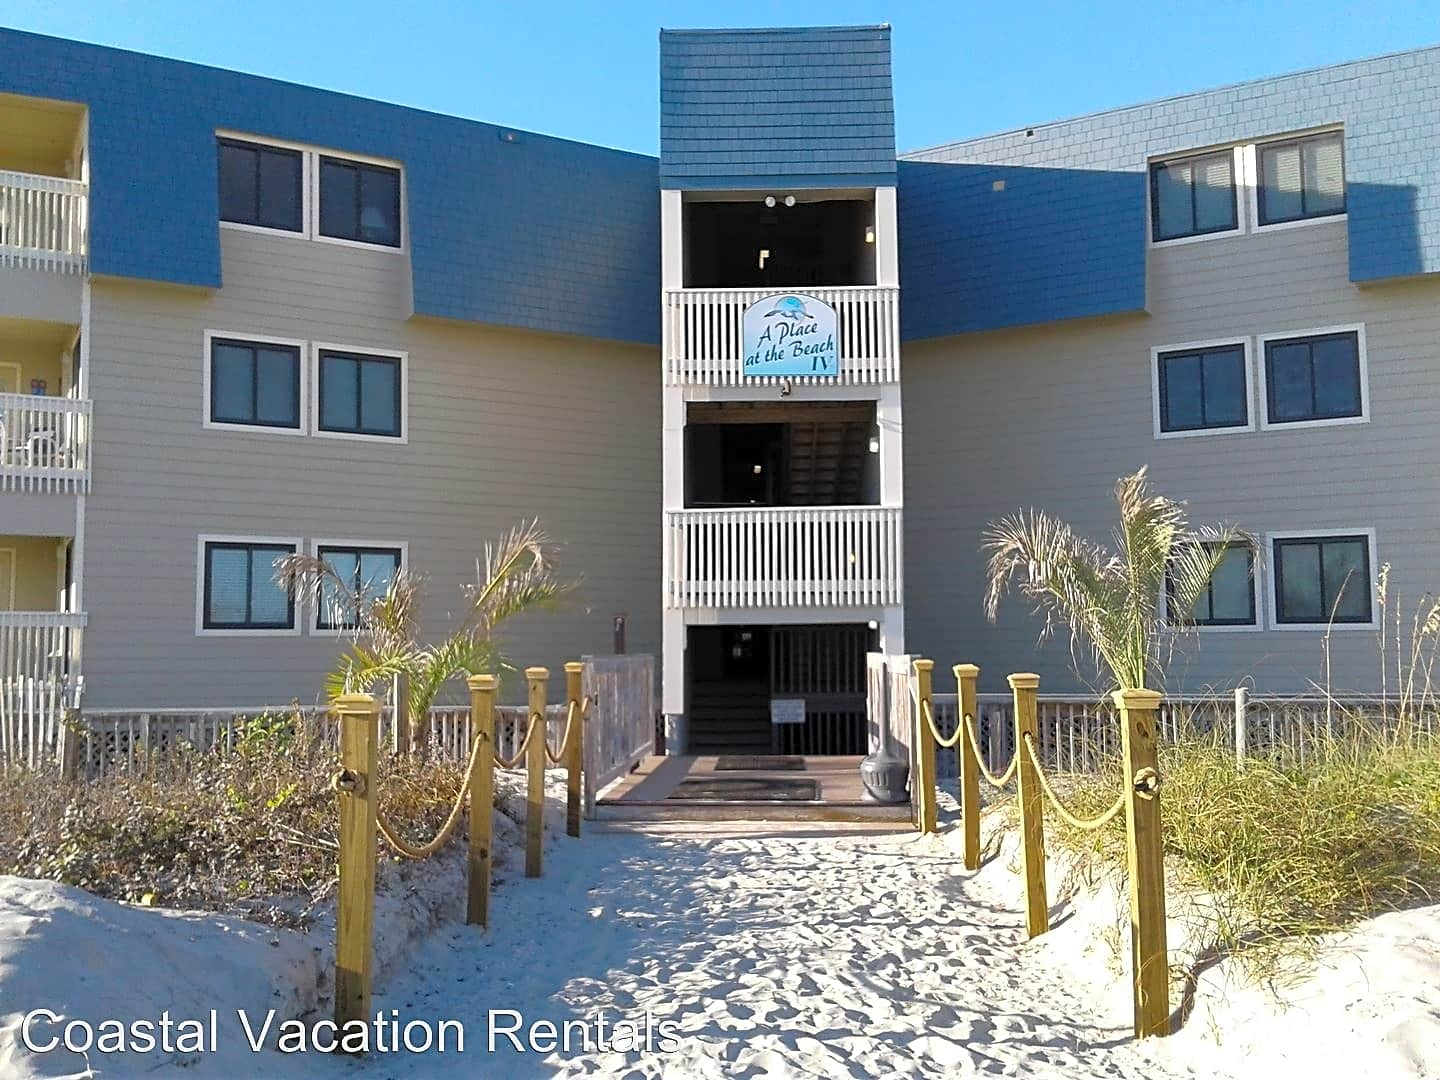 Senior Apartments In Myrtle Beach Sc